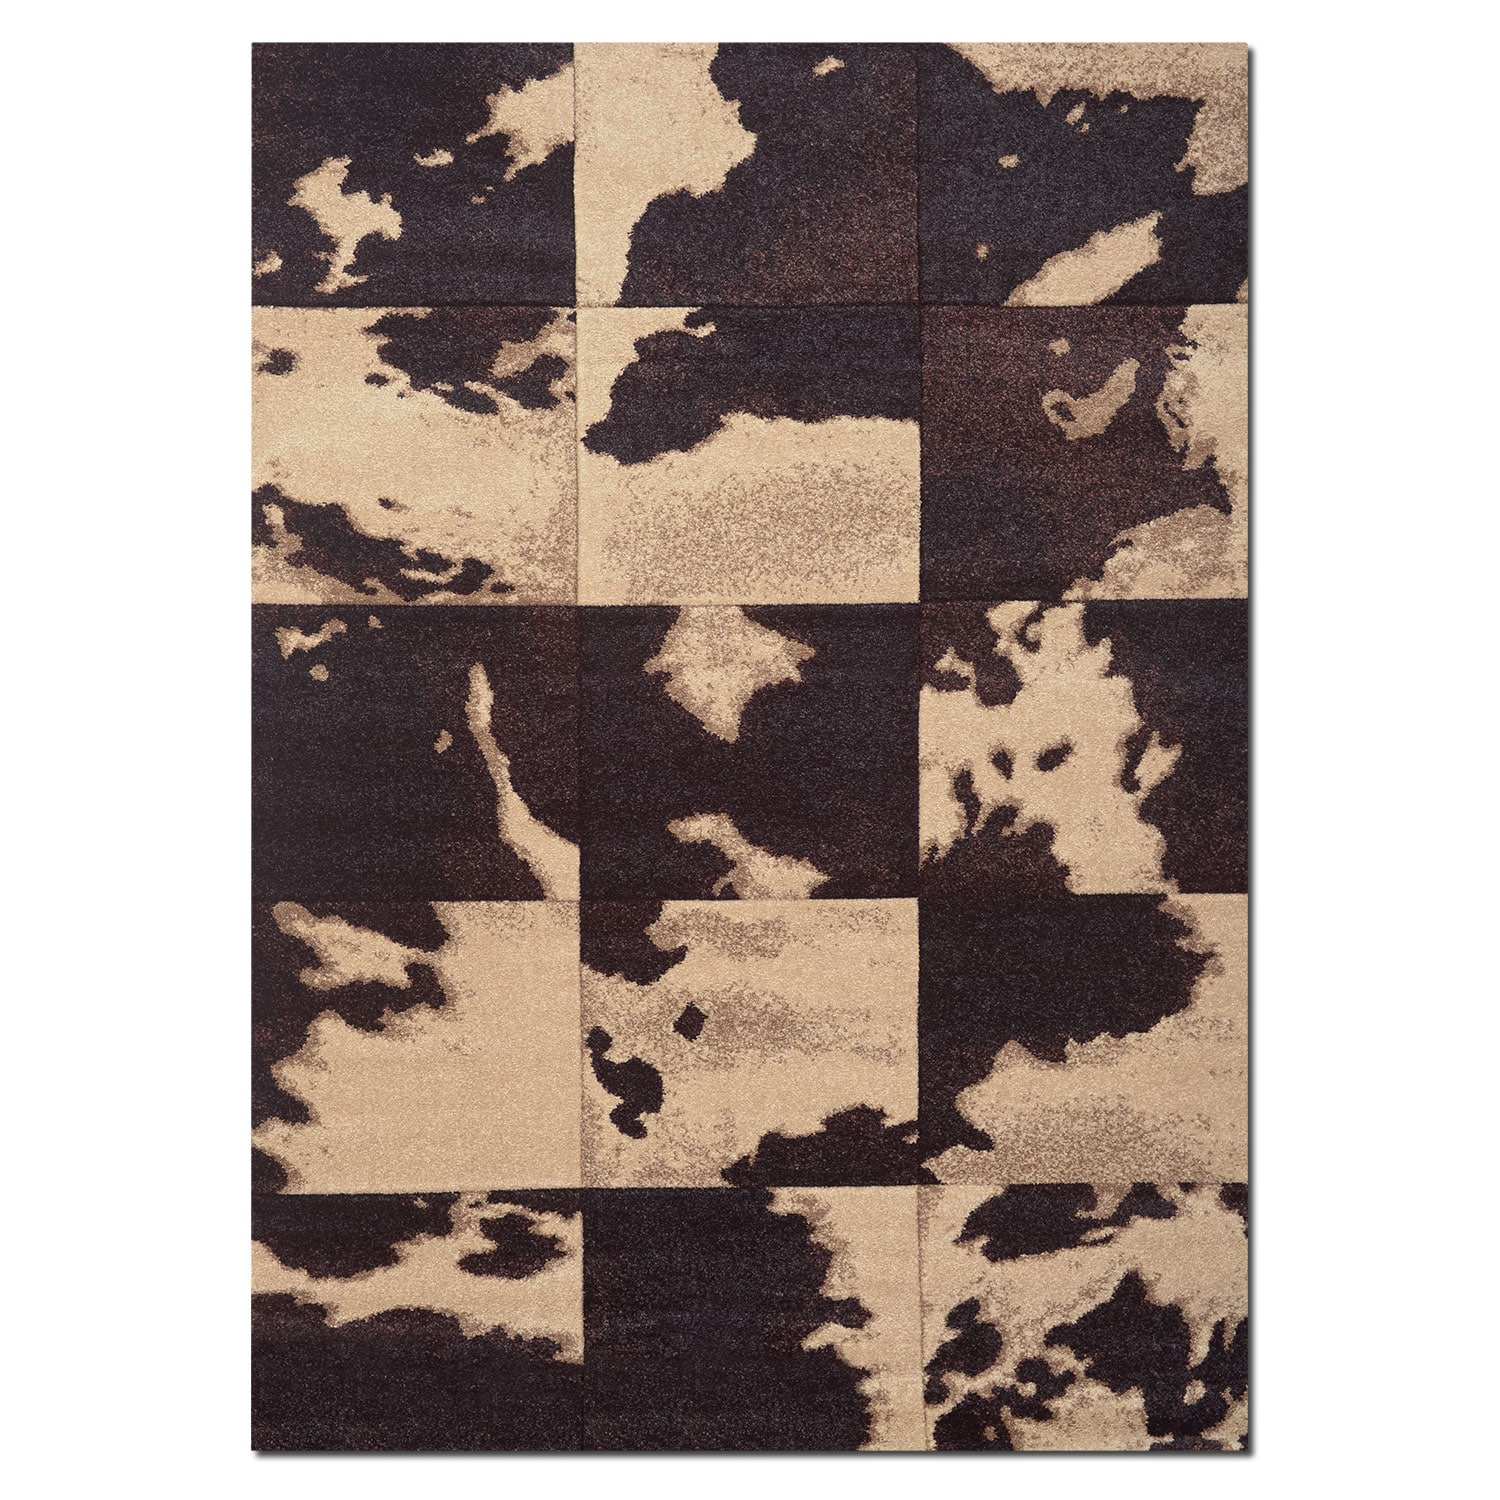 Rugs - Sedona 8' x 10' Area Rug - Chocolate